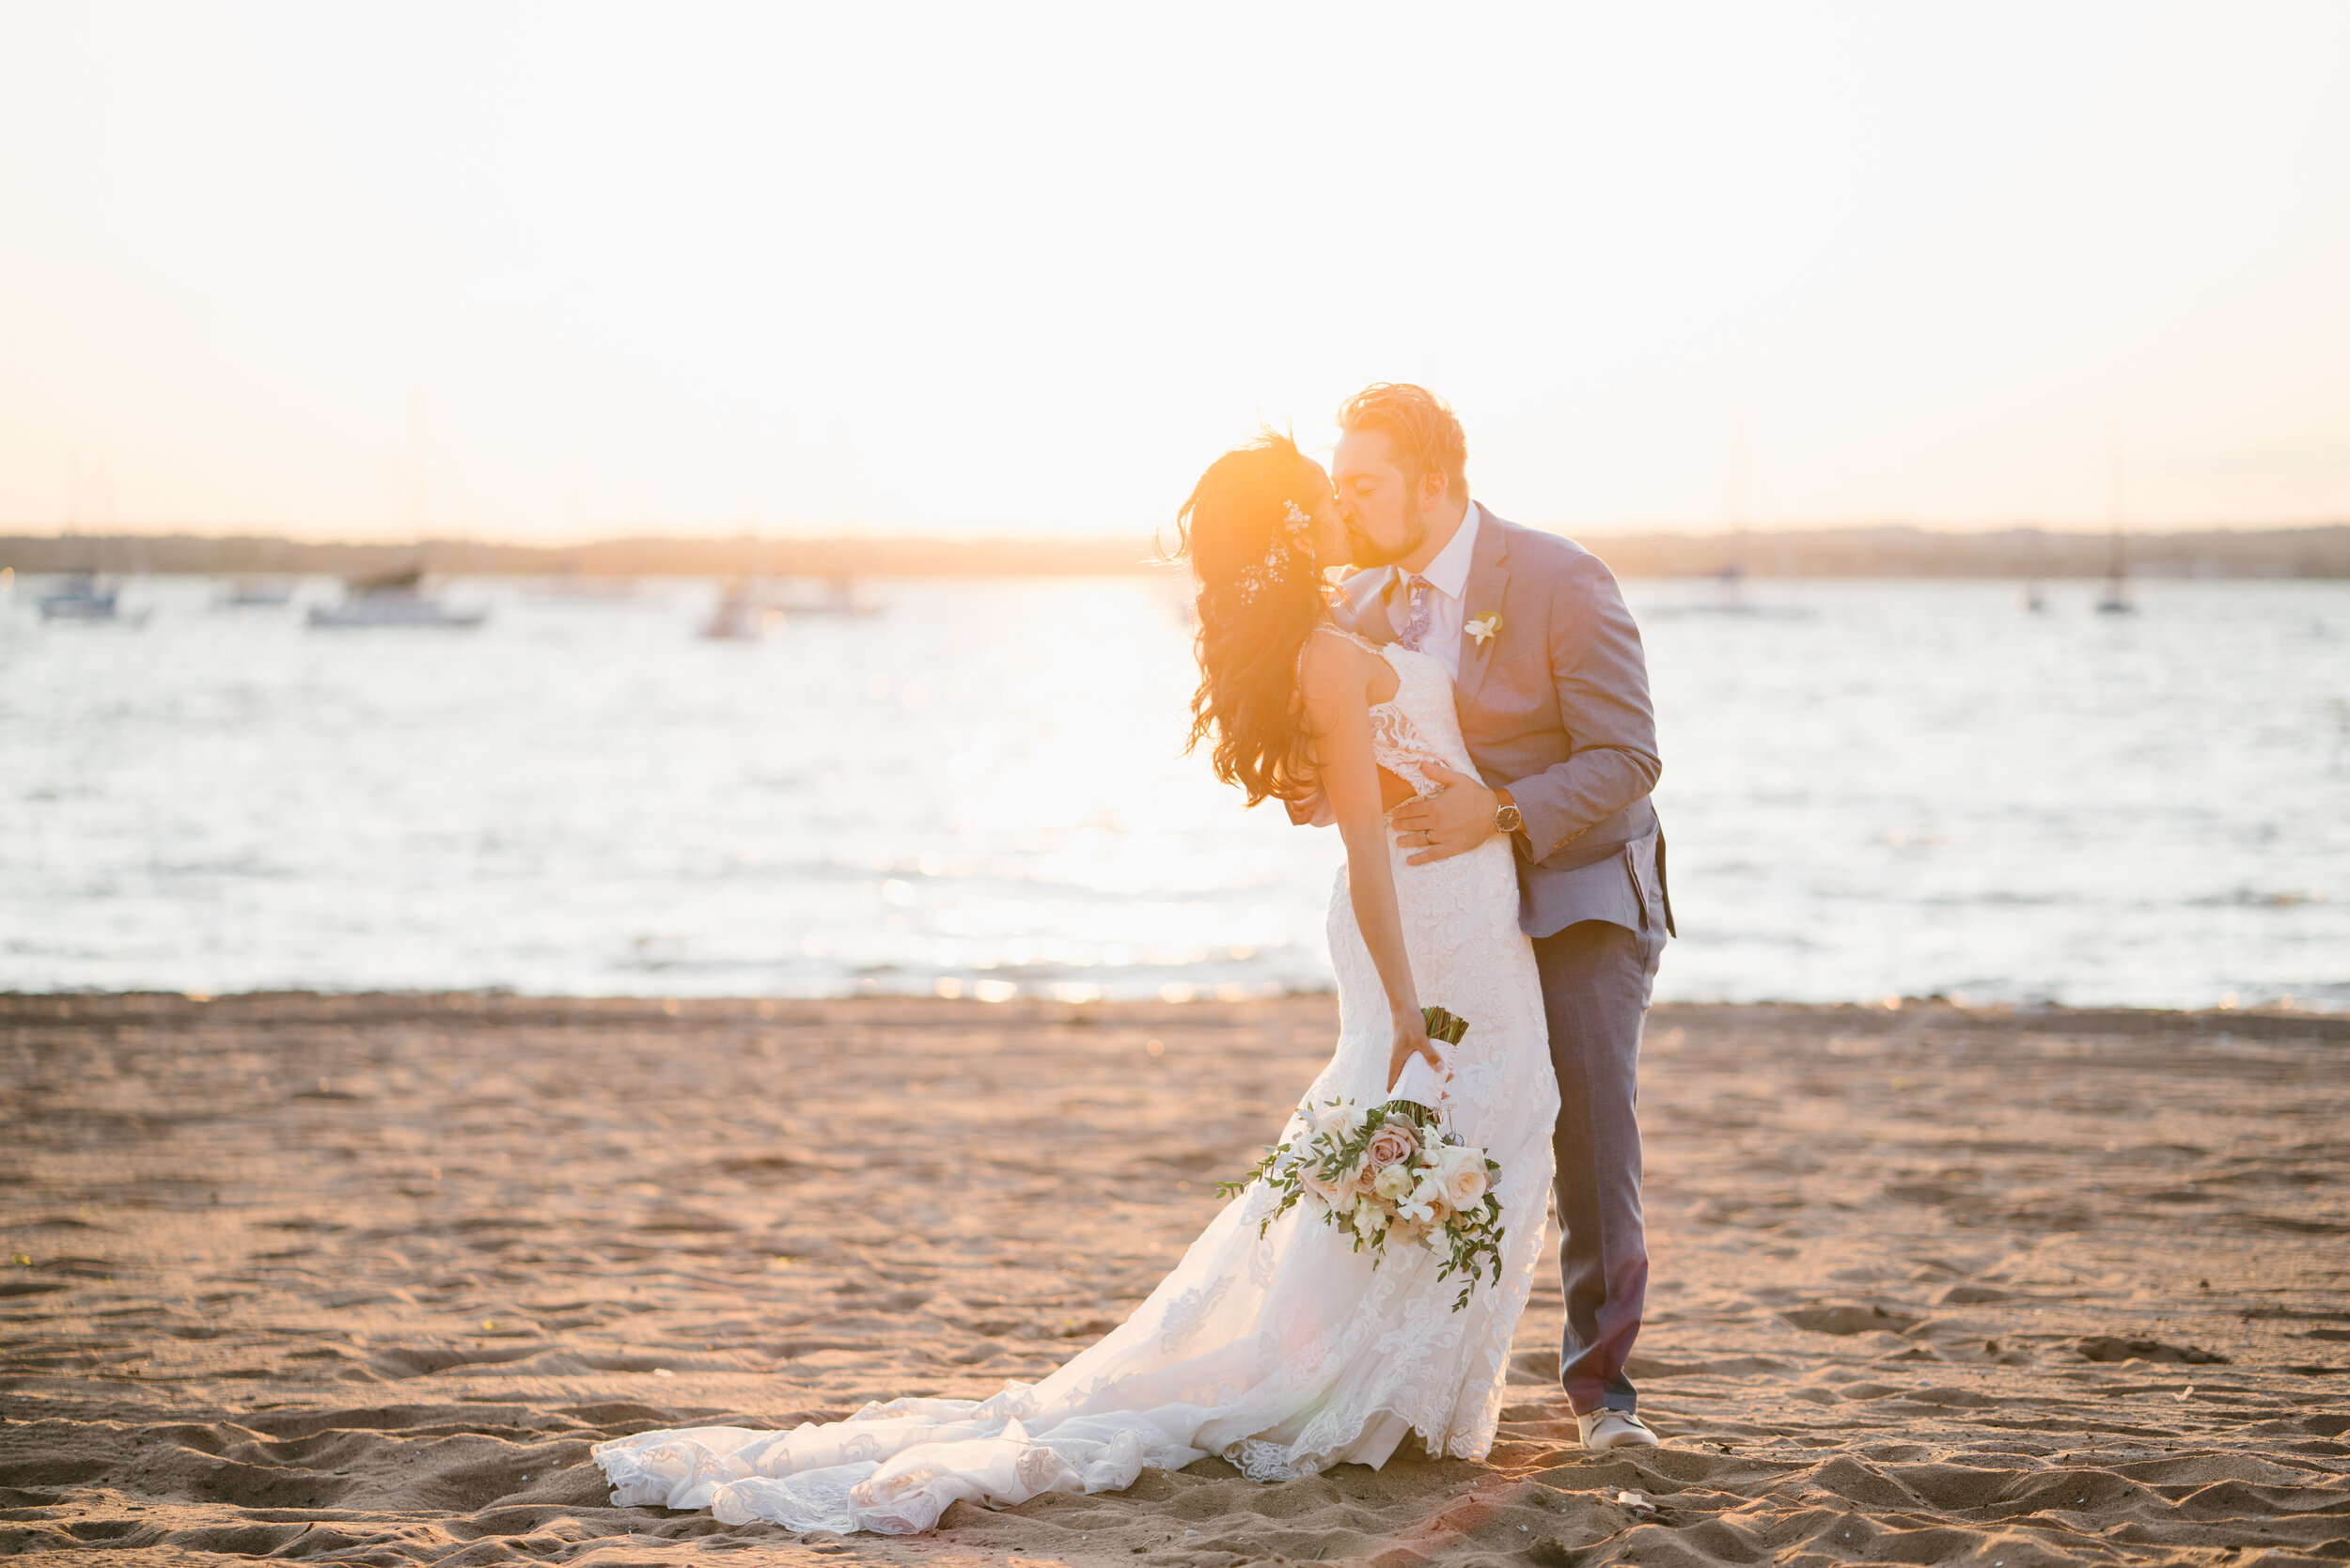 """Weddings done right! - """"Crystal did a phenomenal job making us feel at ease, drawing out genuine moments and big smiles to capture on camera."""""""